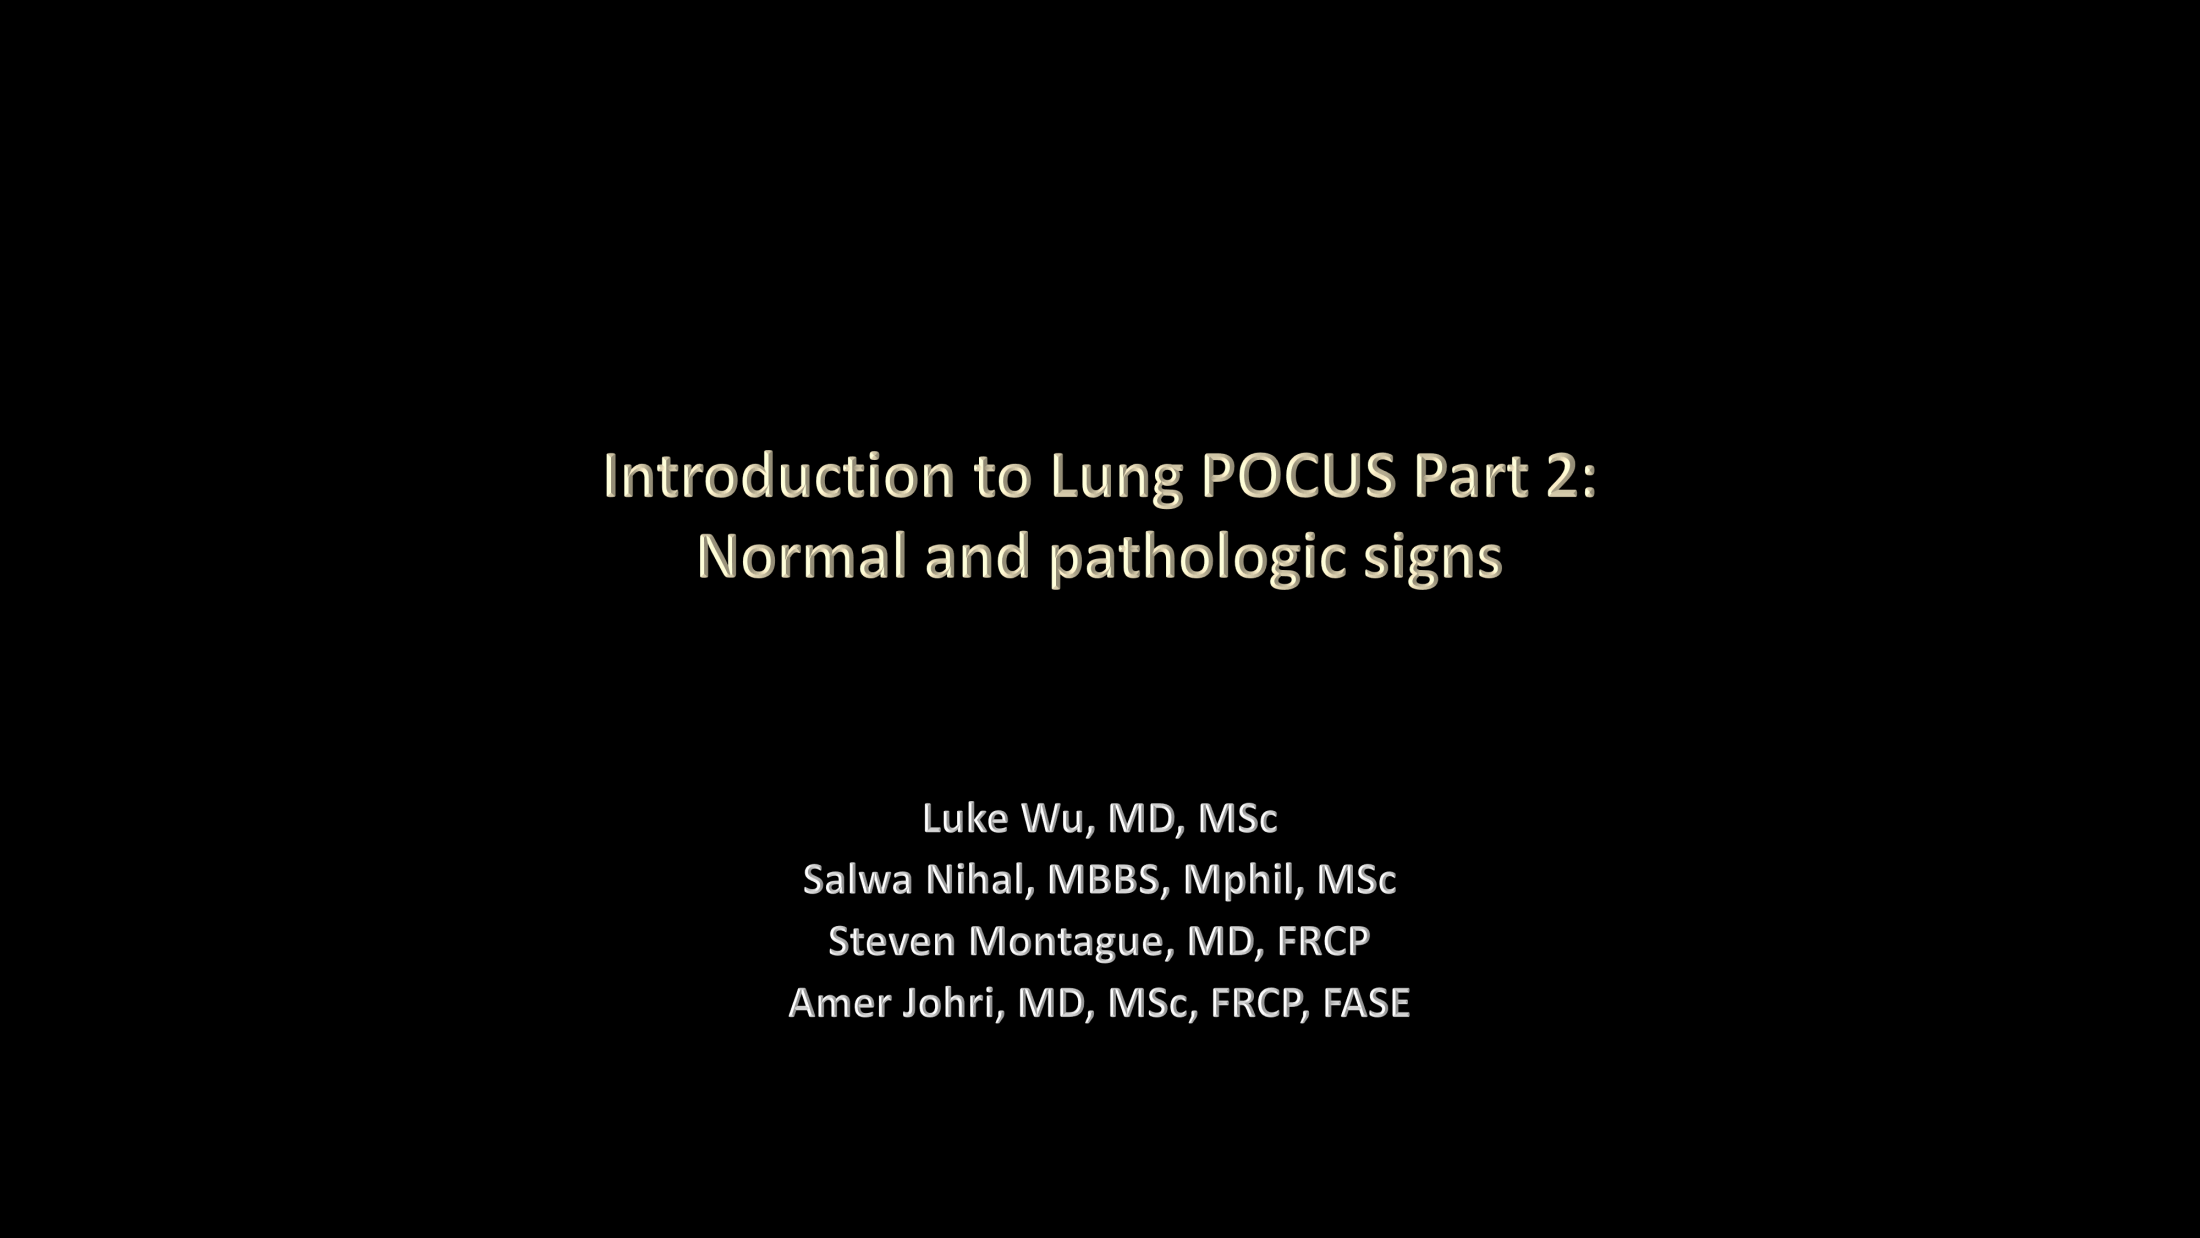 LUS Part 2 - Normal and pathologic findings